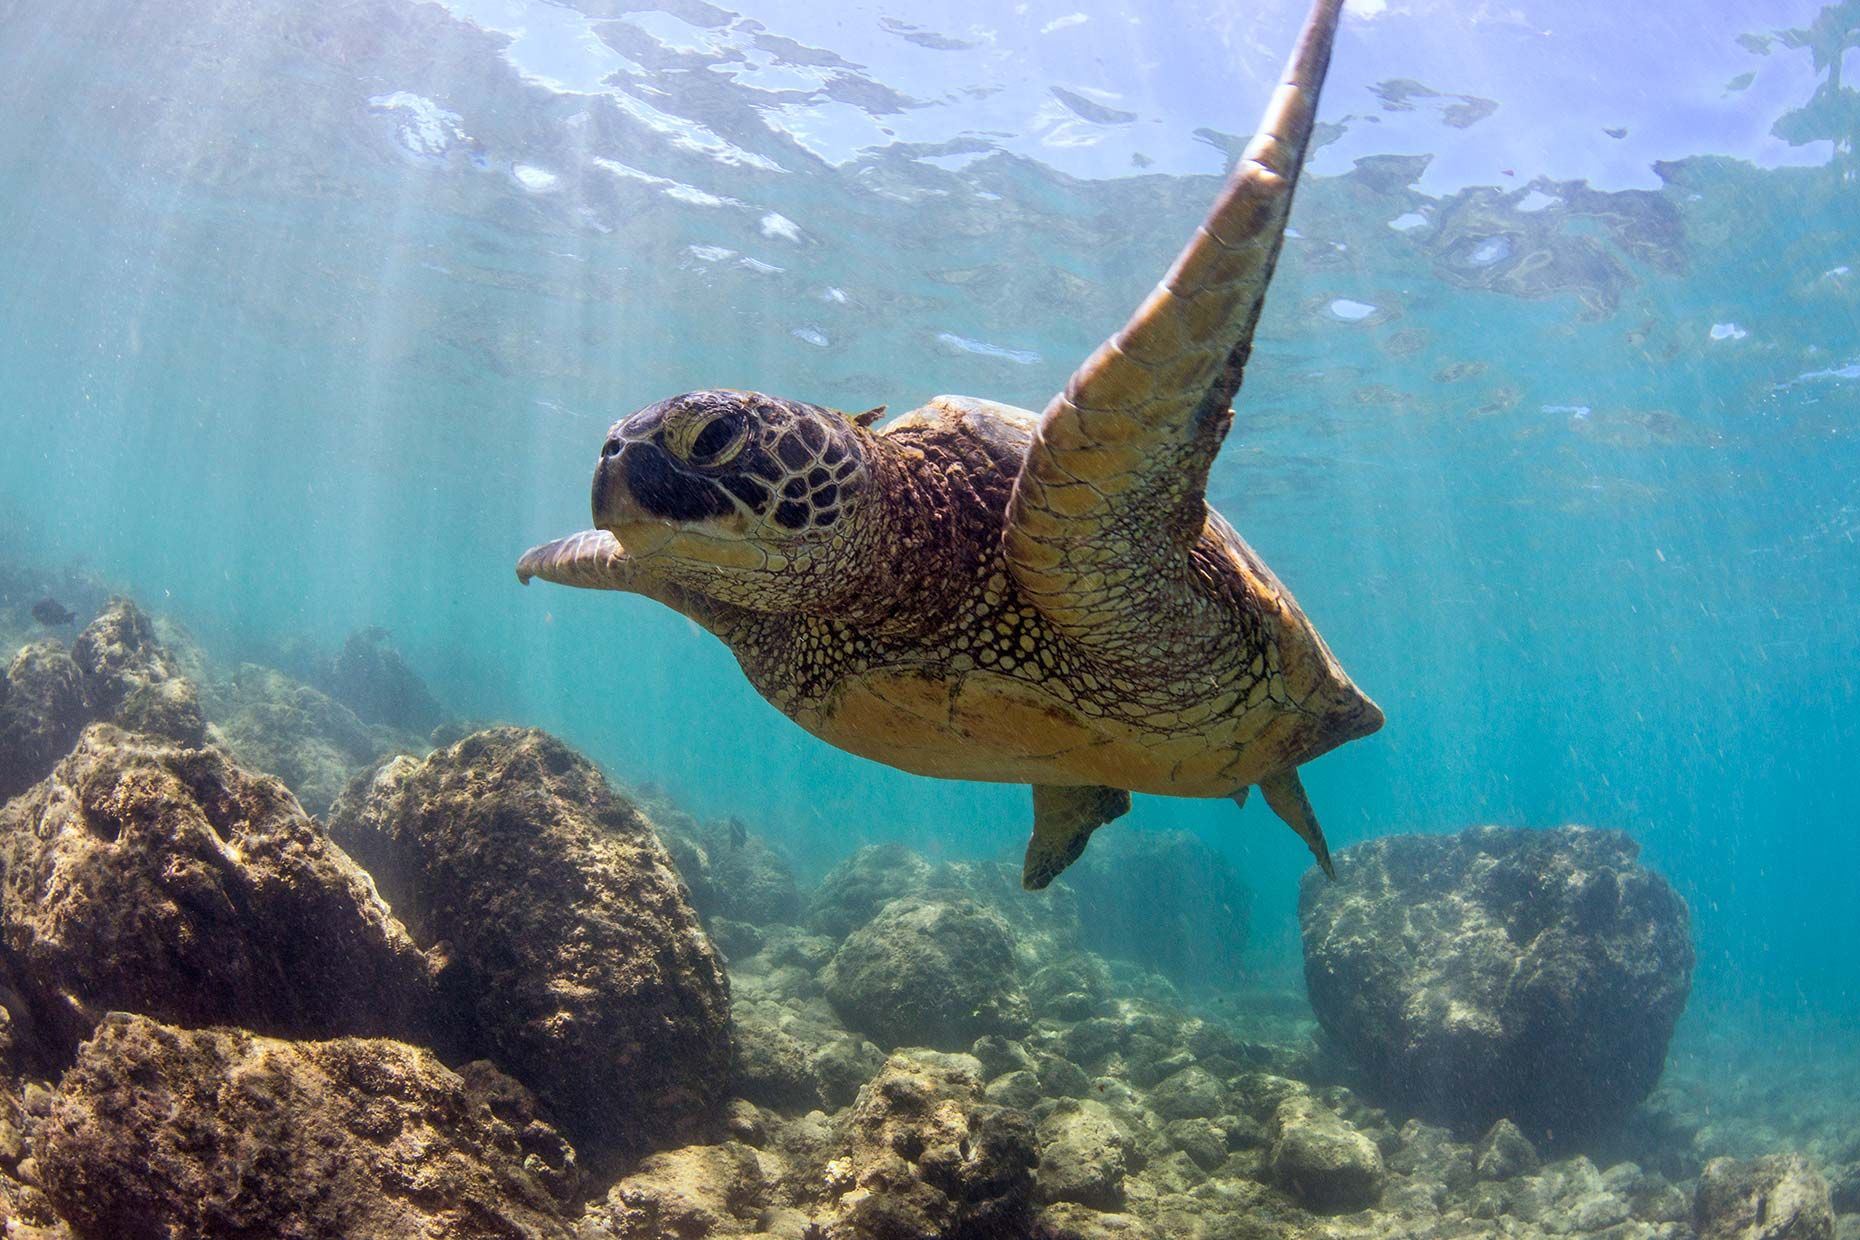 Ian-Coble-Beach-Lifestyle-Resort-Hawaii-Maui-Sea-Turtle-Underwater